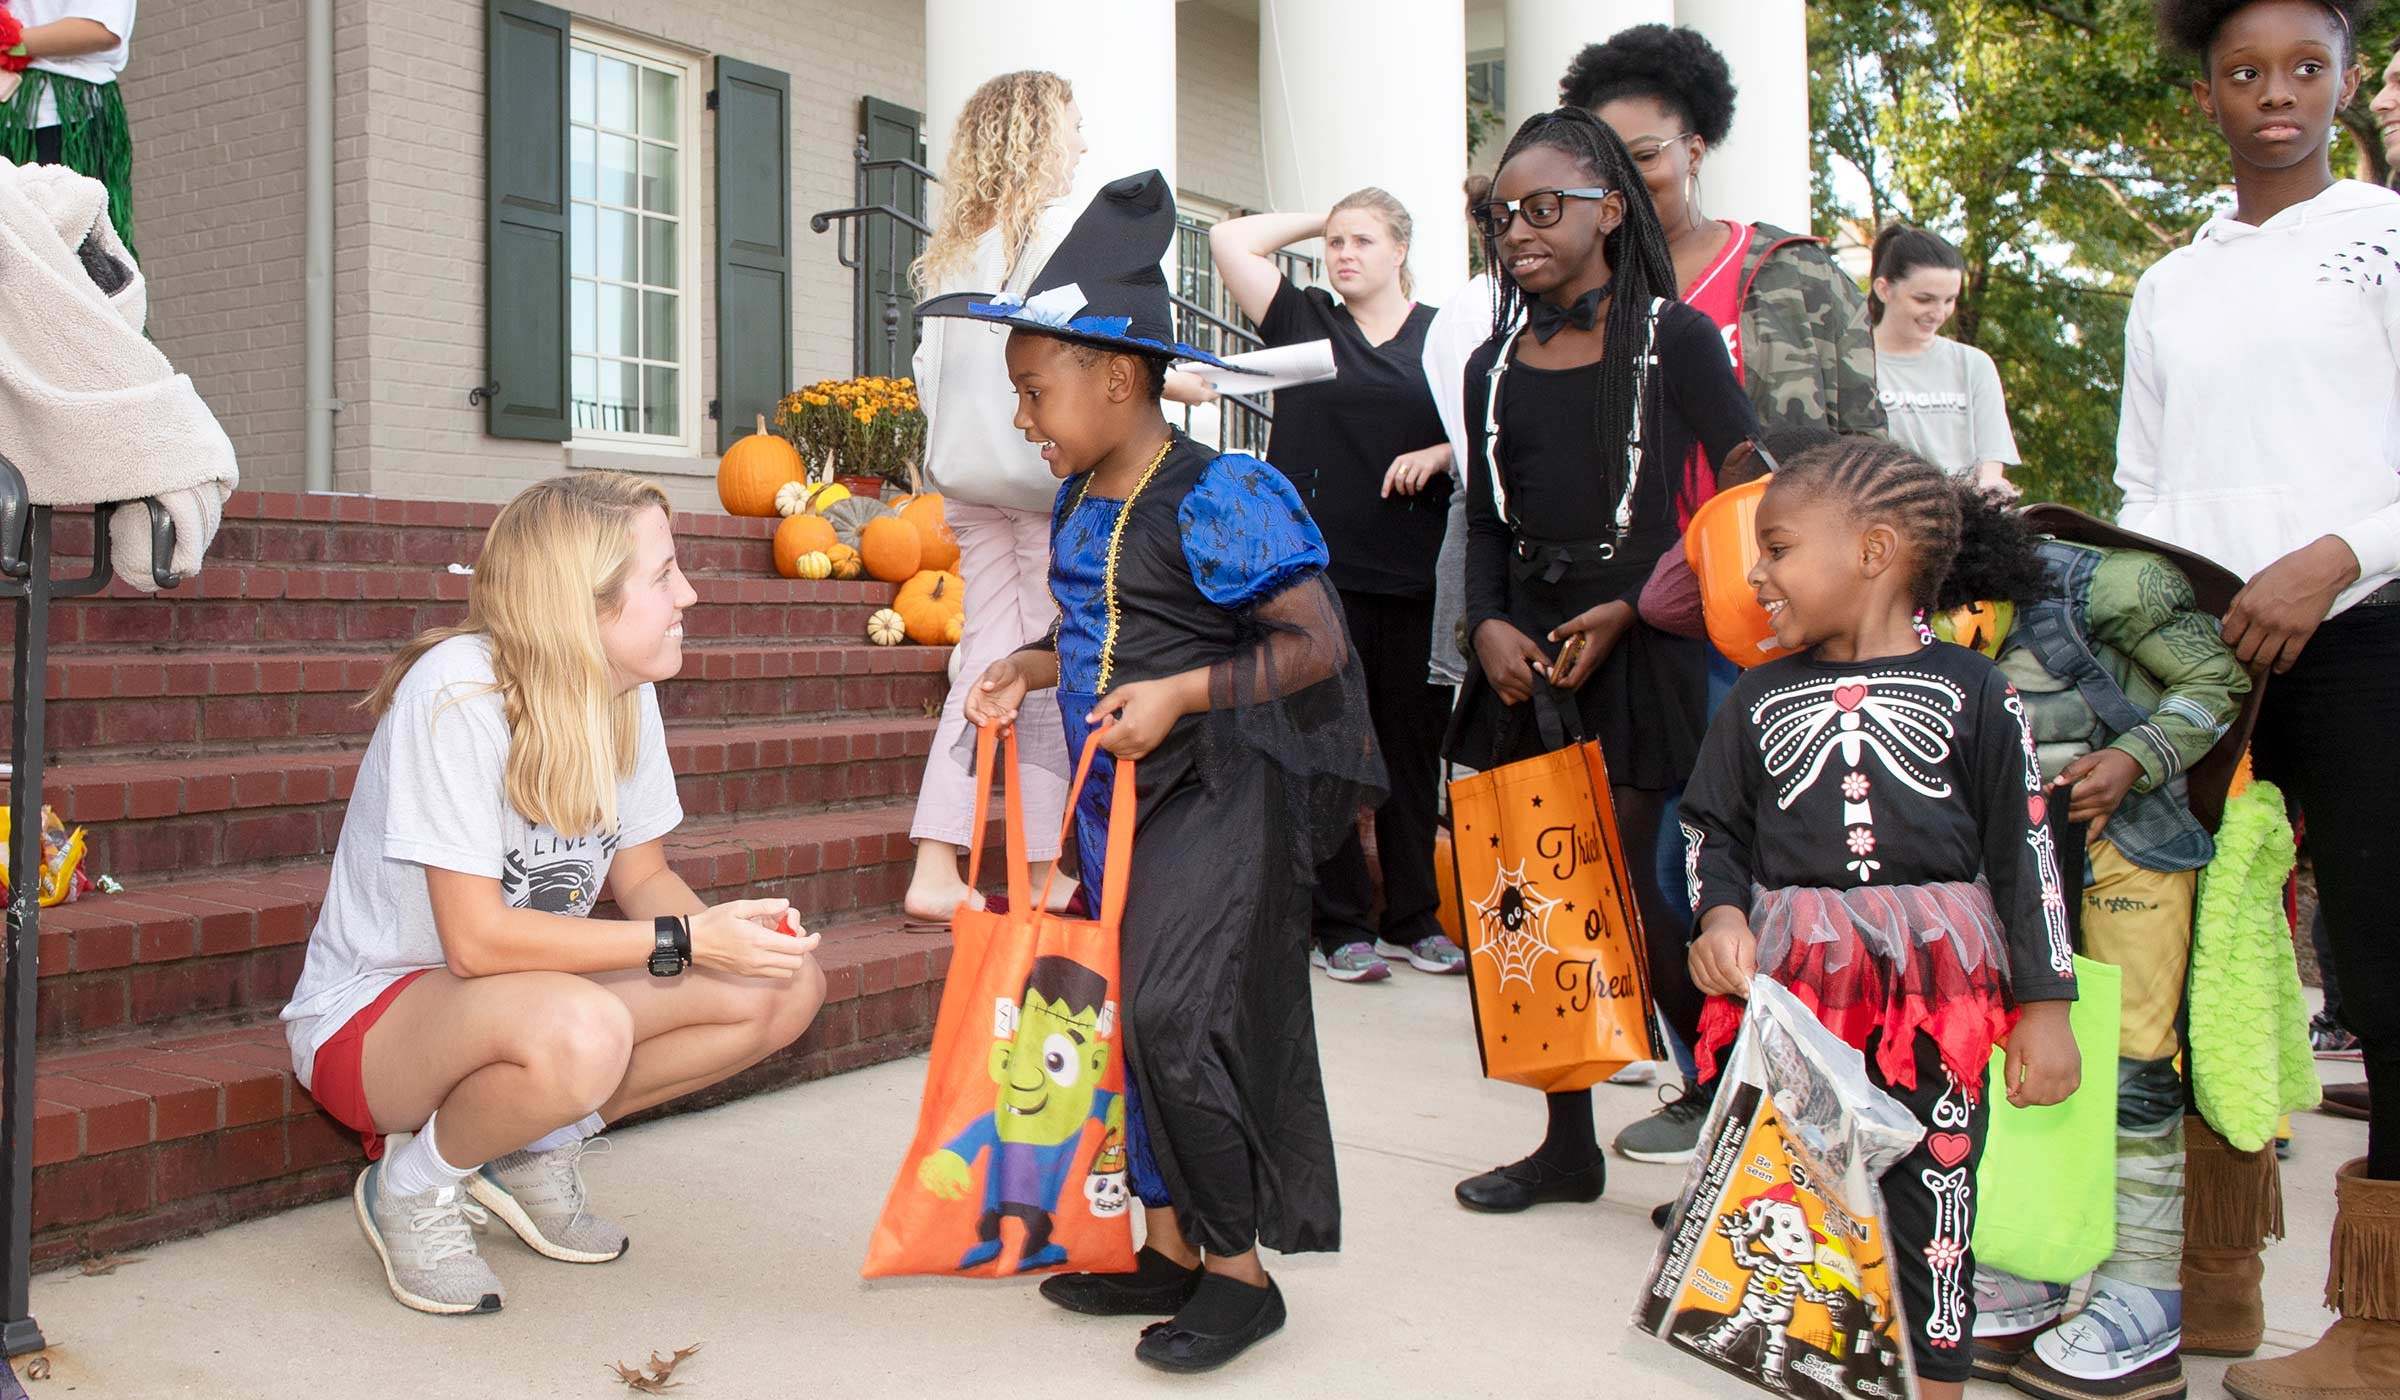 Mississippi State University Halloween Activities 2020 Trick or Treat | Mississippi State University